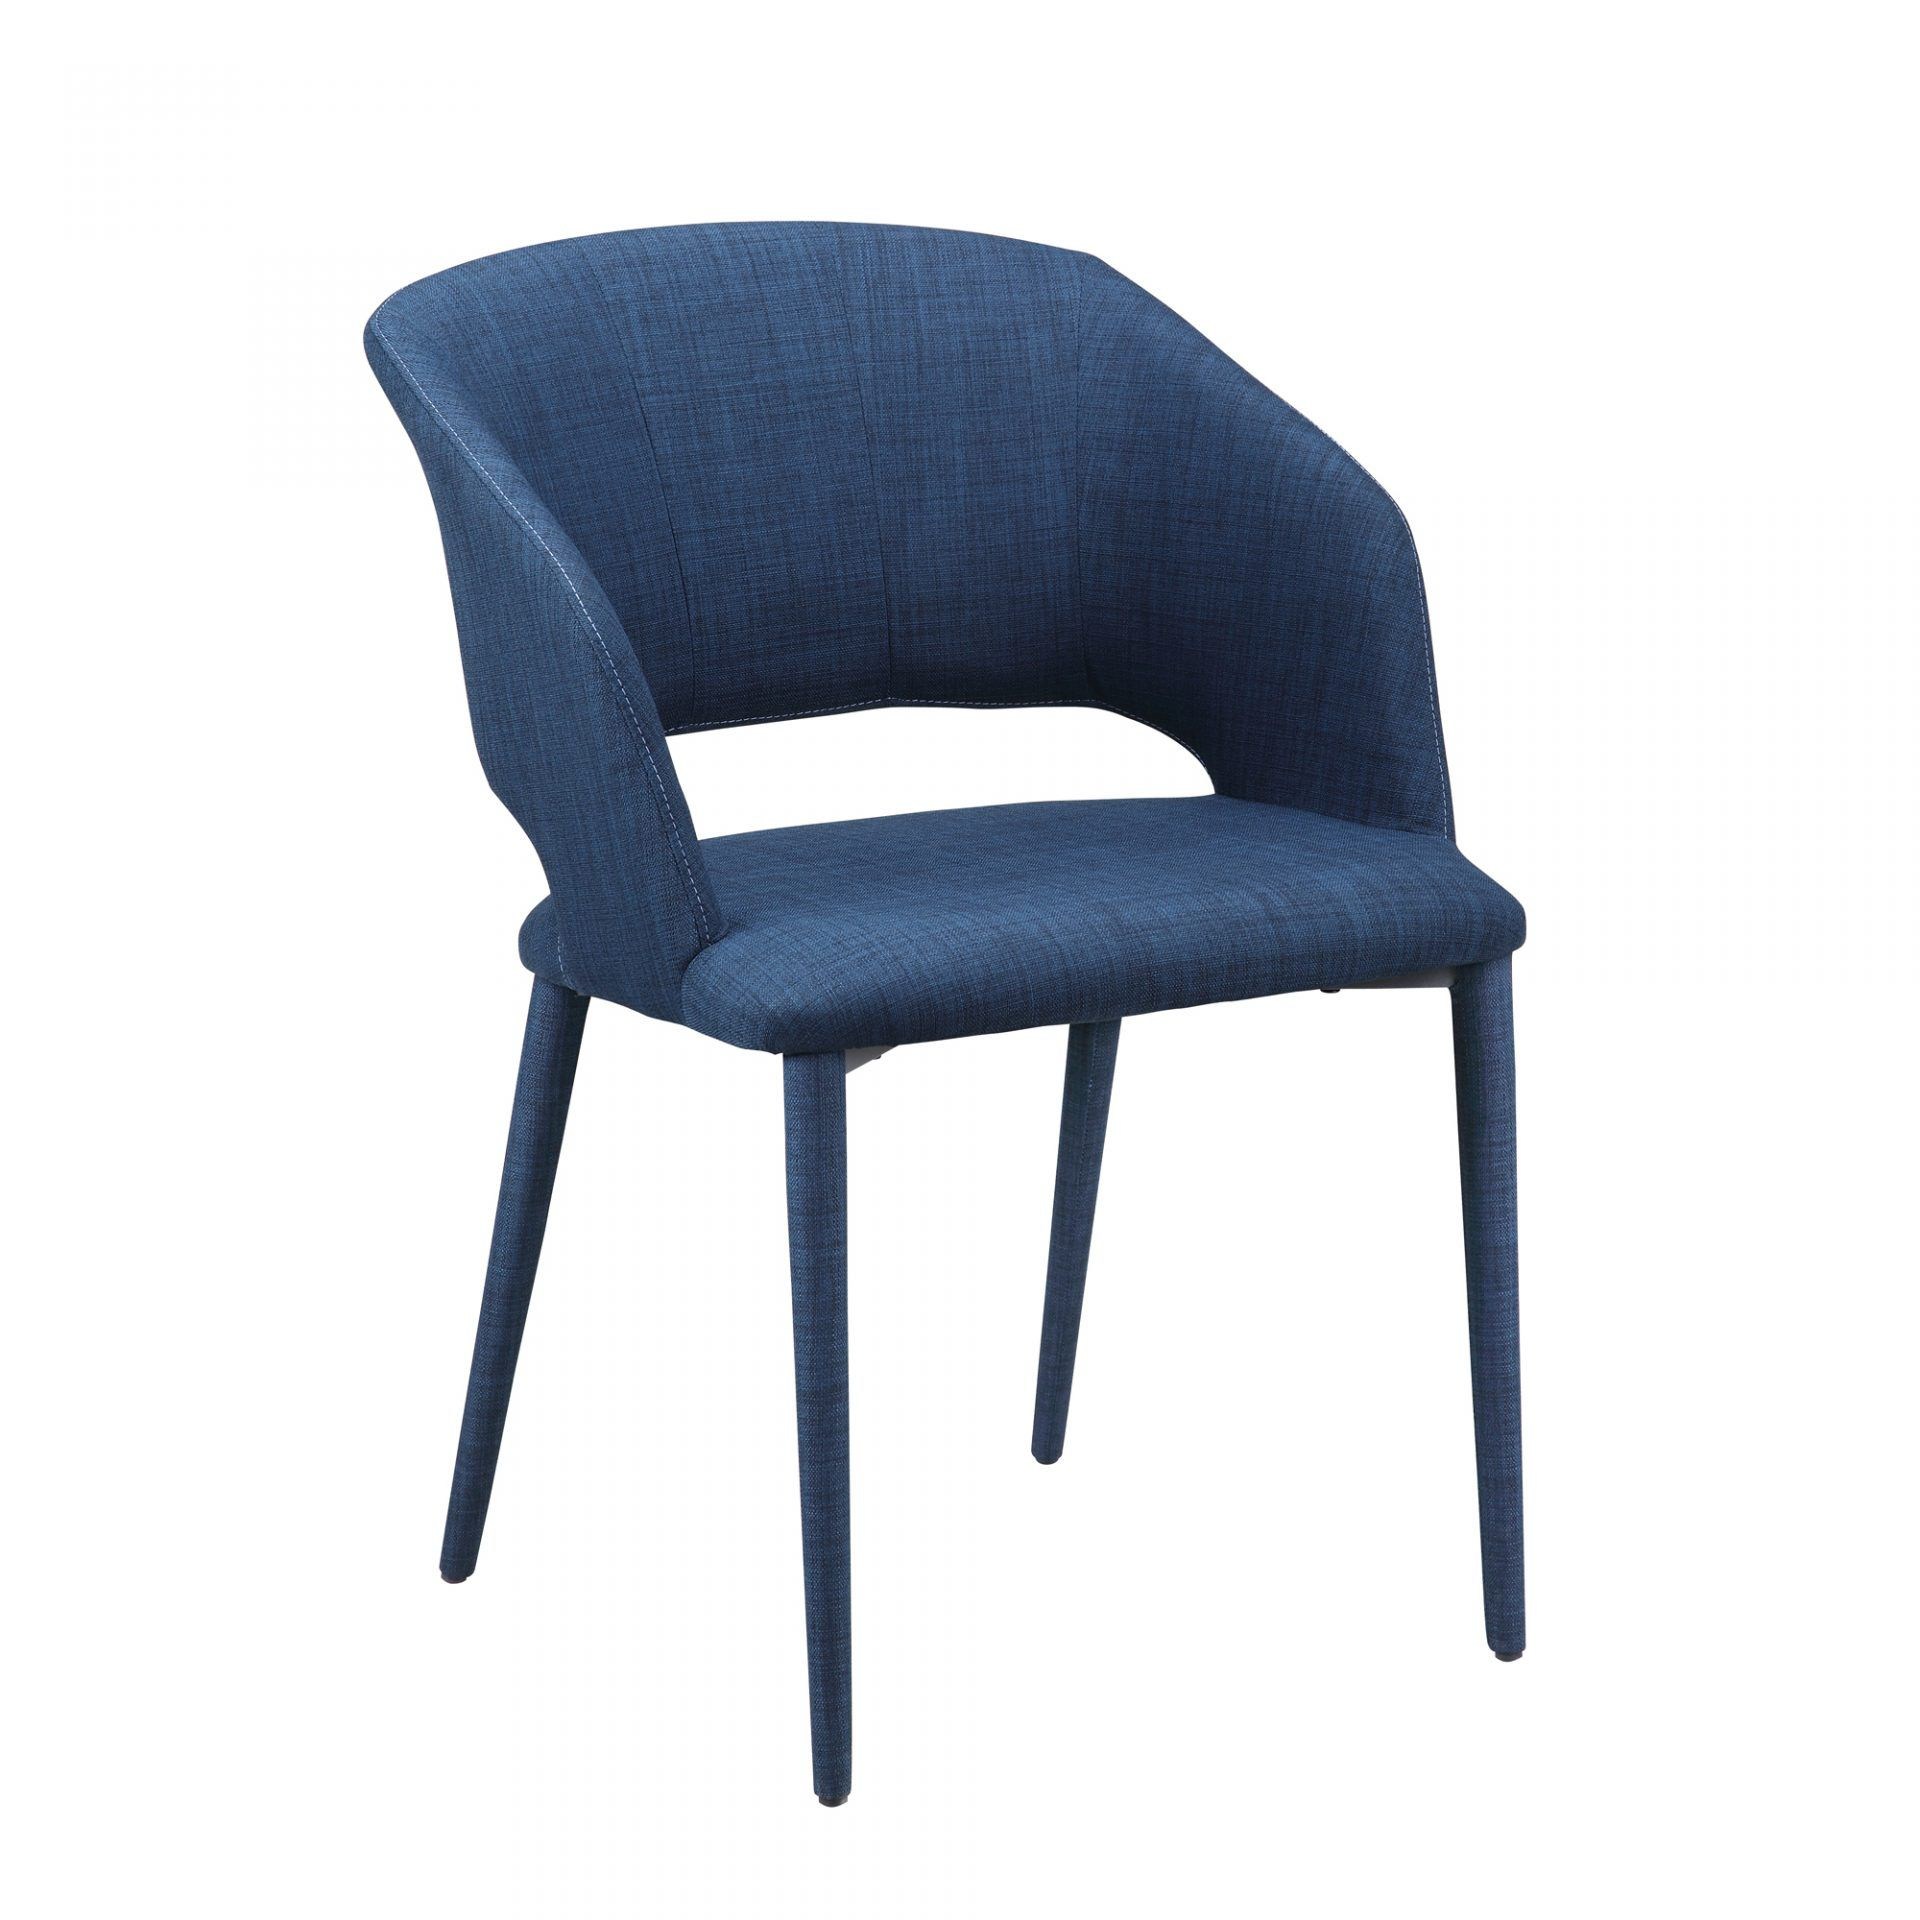 William Dining Chair Navy Blue  Dining Chairs  Moe's Wholesale Classy Wholesale Dining Room Chairs Design Ideas